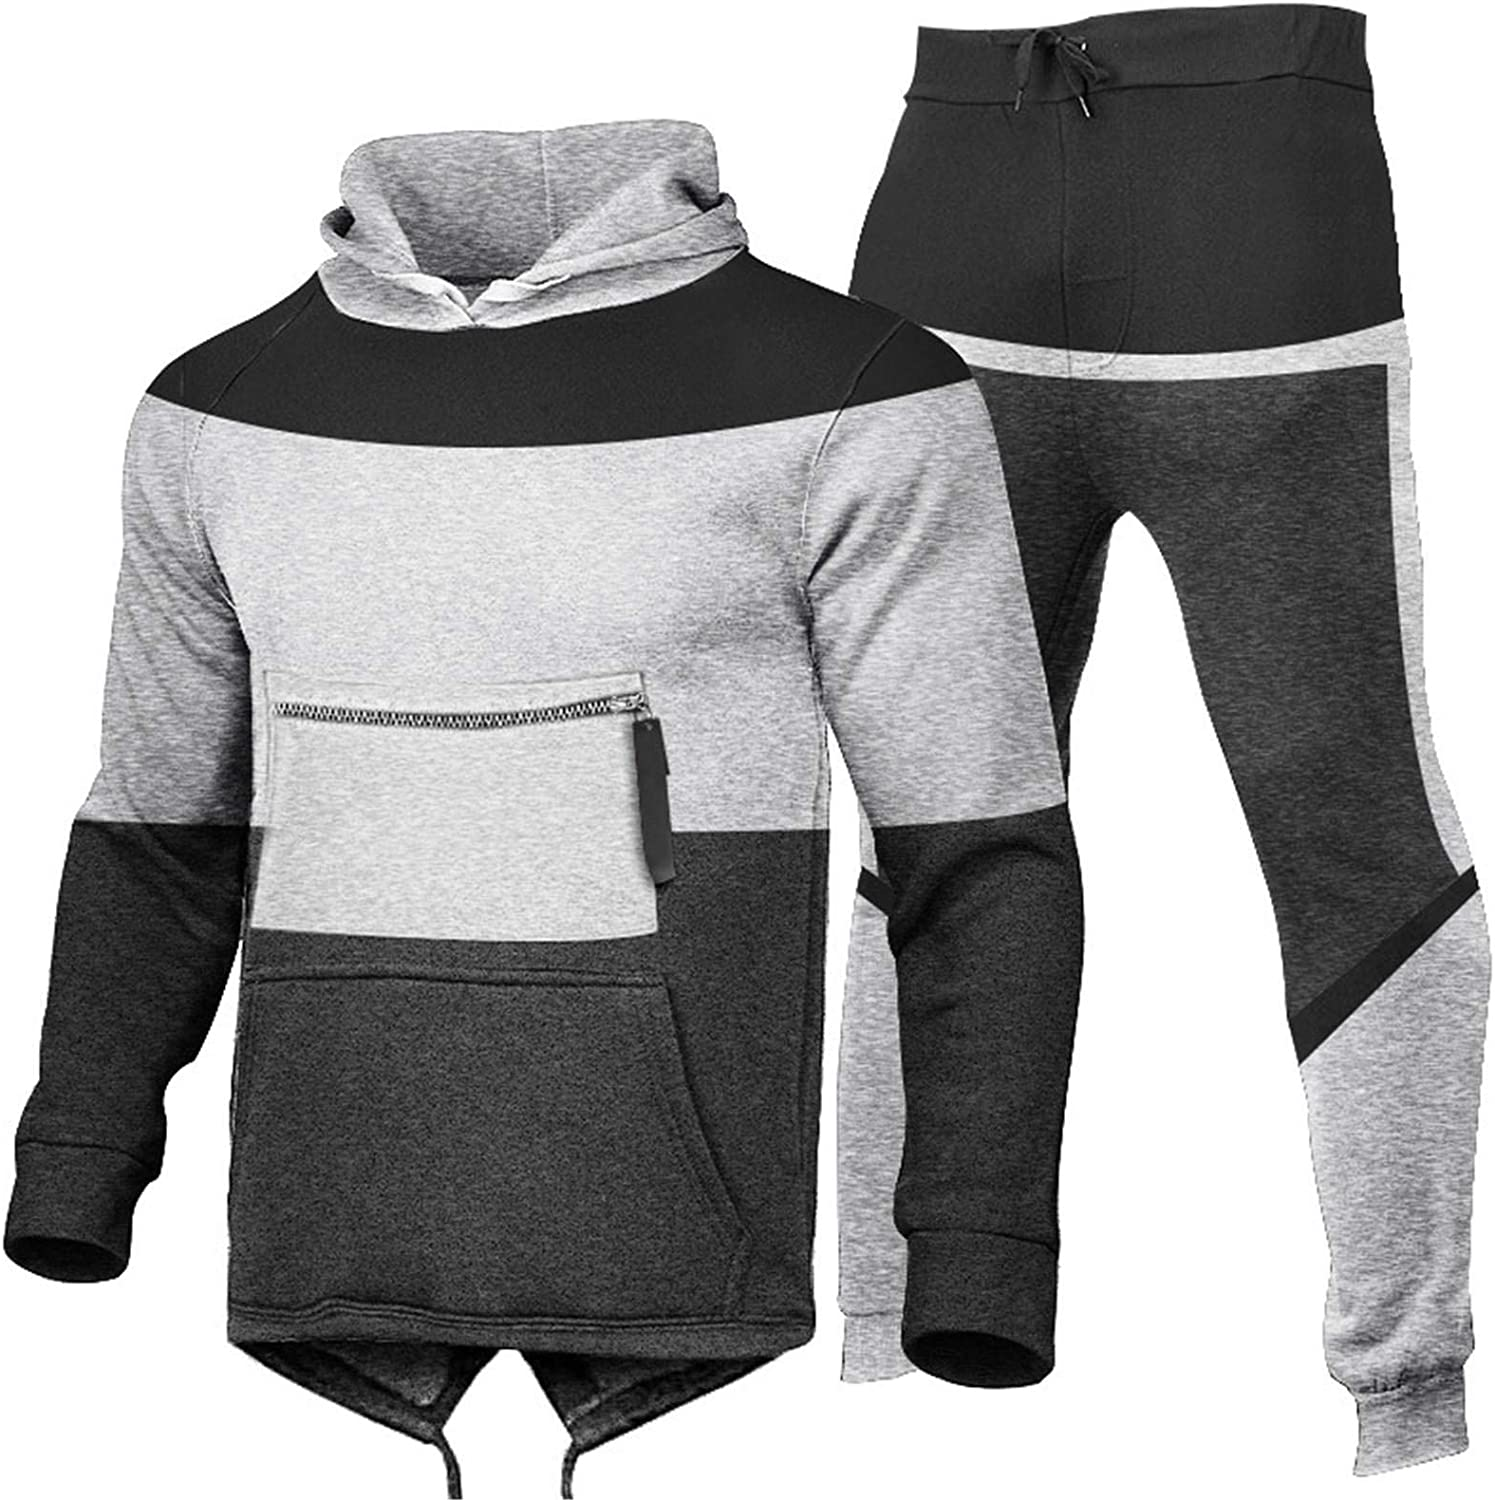 Men's 2 Piece Hoodies Tracksuit Sets Casual Full Zip Long Sleeve Running Jogging Sports Athletic Sweat Suits